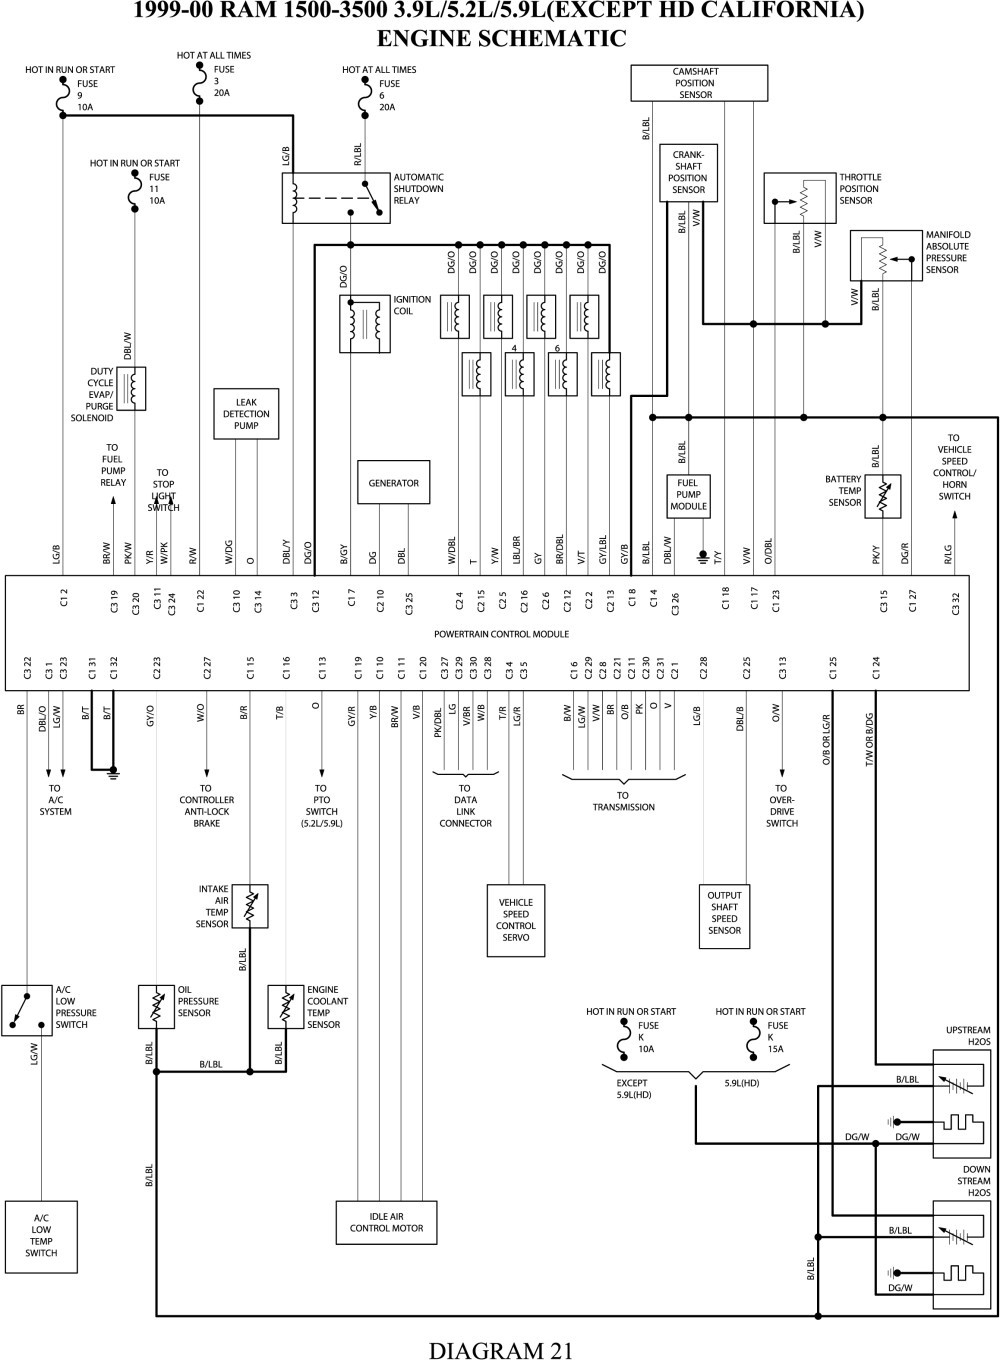 2014 Dodge Ram Wiring Diagram | Free Wiring Diagram on